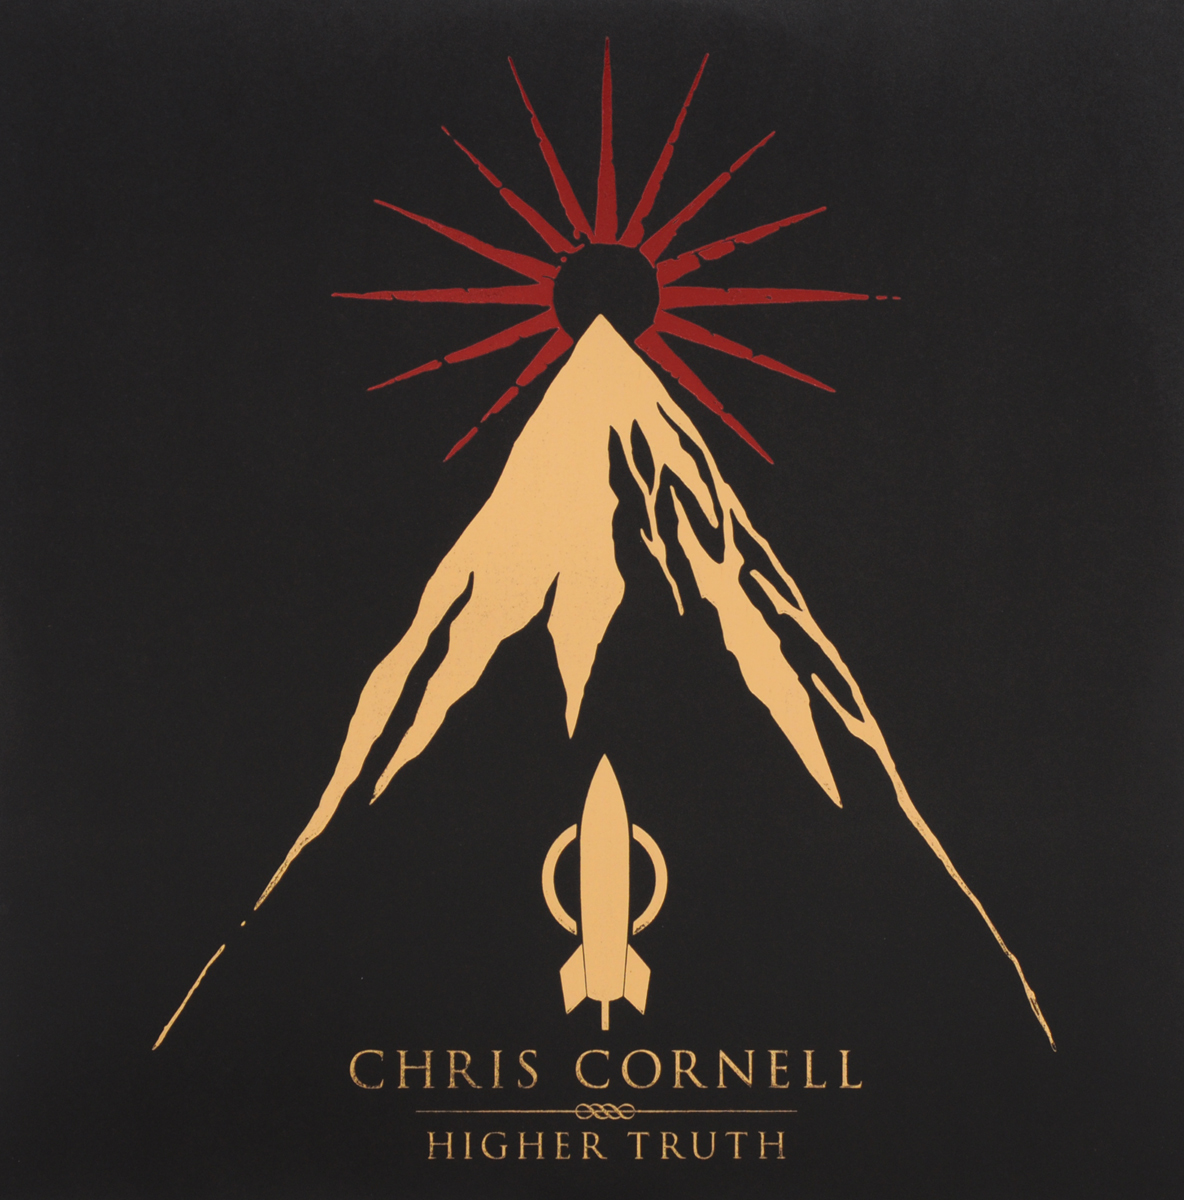 Крис Корнелл Chris Cornell. Higher Truth (2 LP) крис мичелл chris michell the last whale